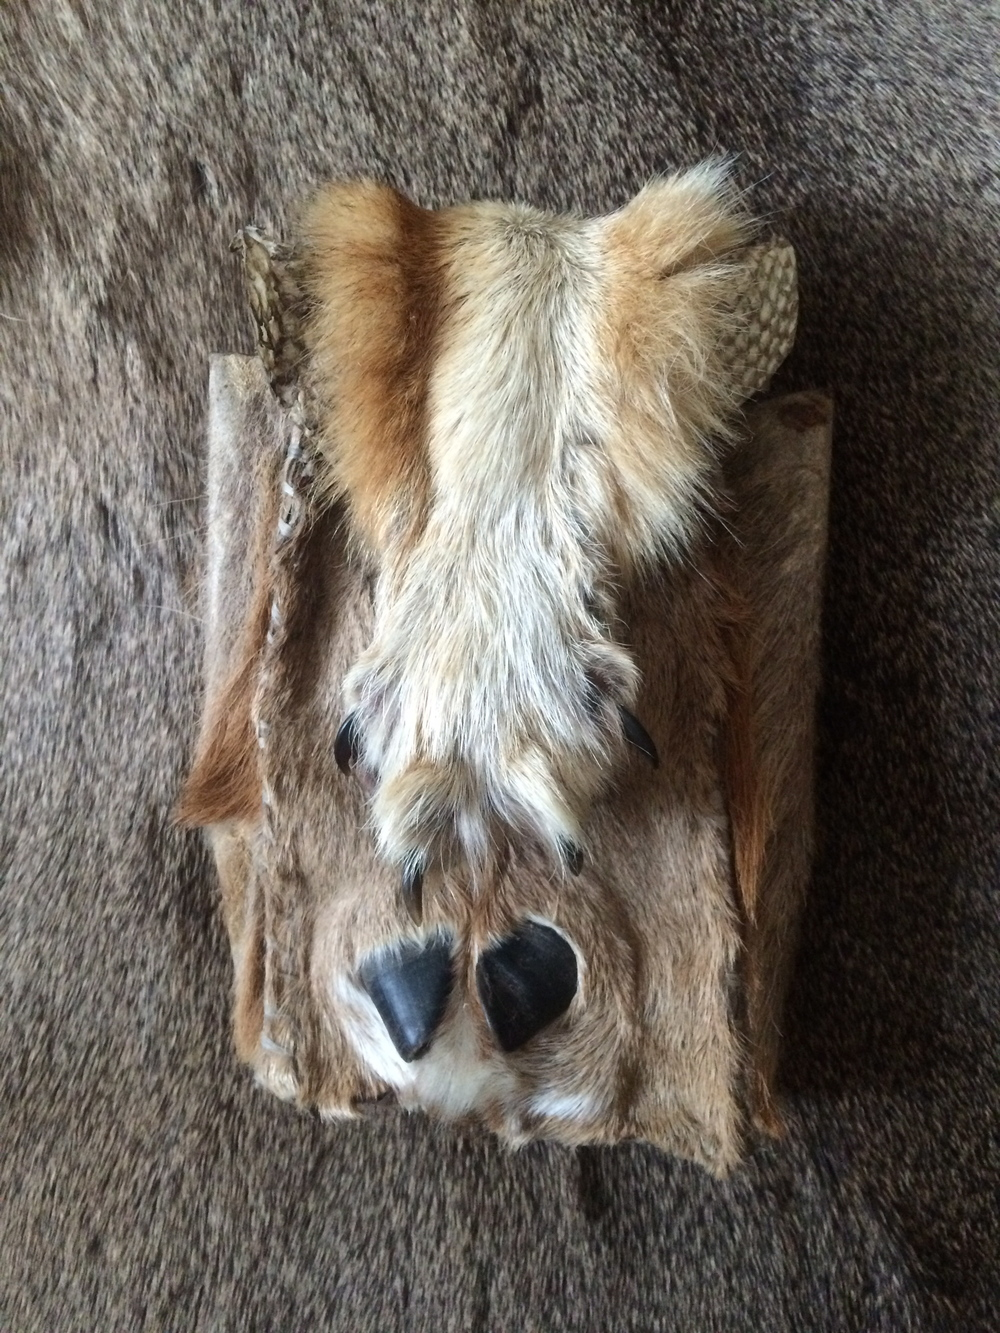 deer hocks, bark tan coyote paw, oil tan salmon skin